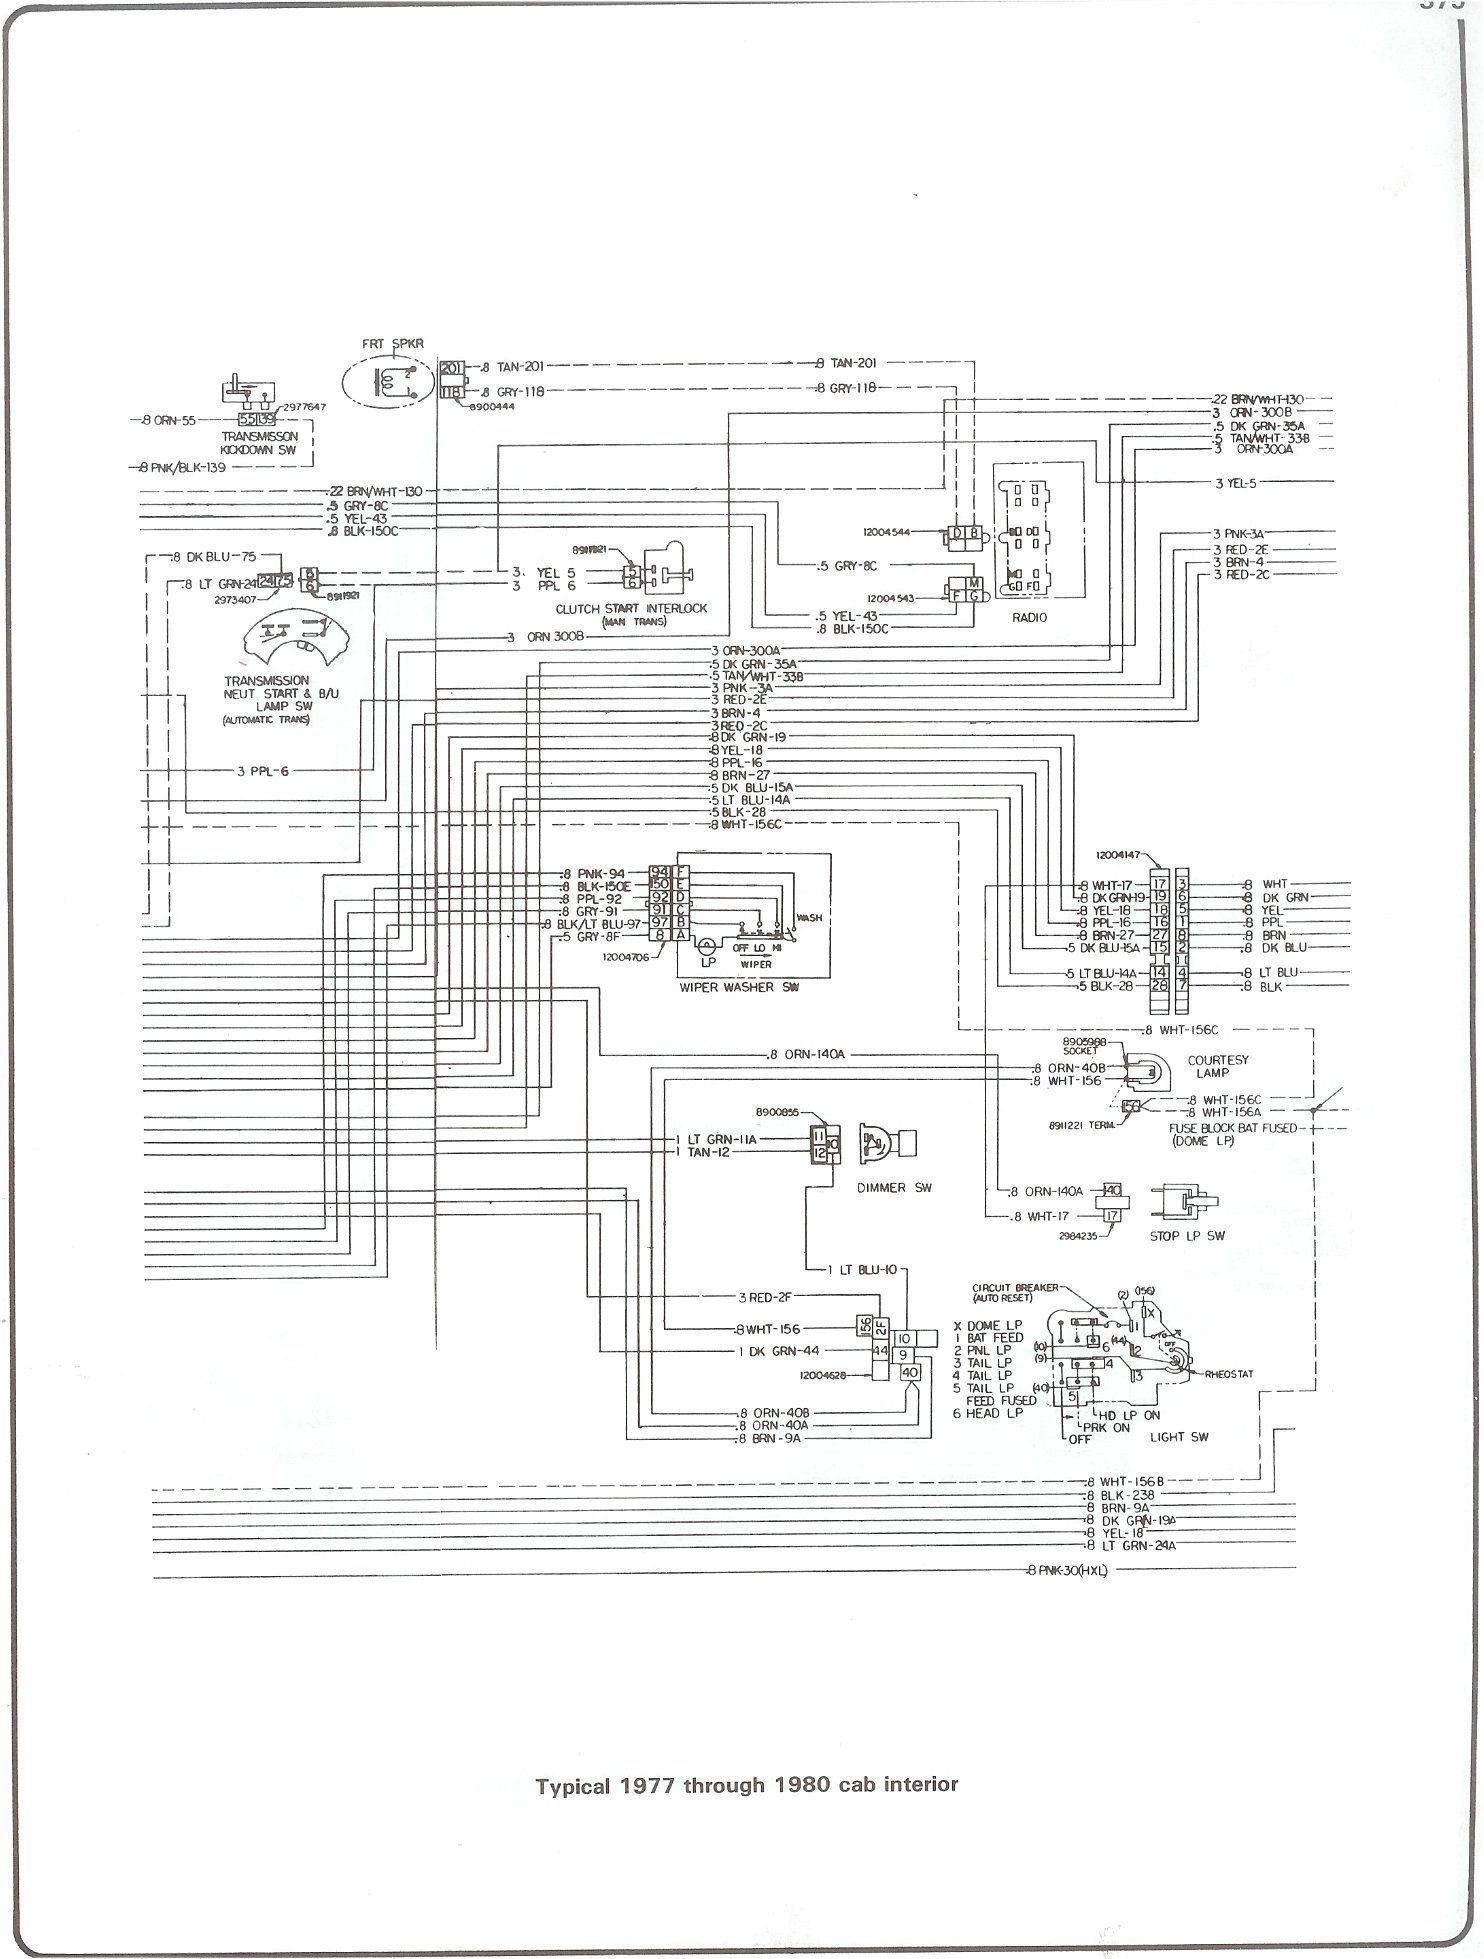 77 80_cab_inter complete 73 87 wiring diagrams gm ignition wiring diagram at nearapp.co